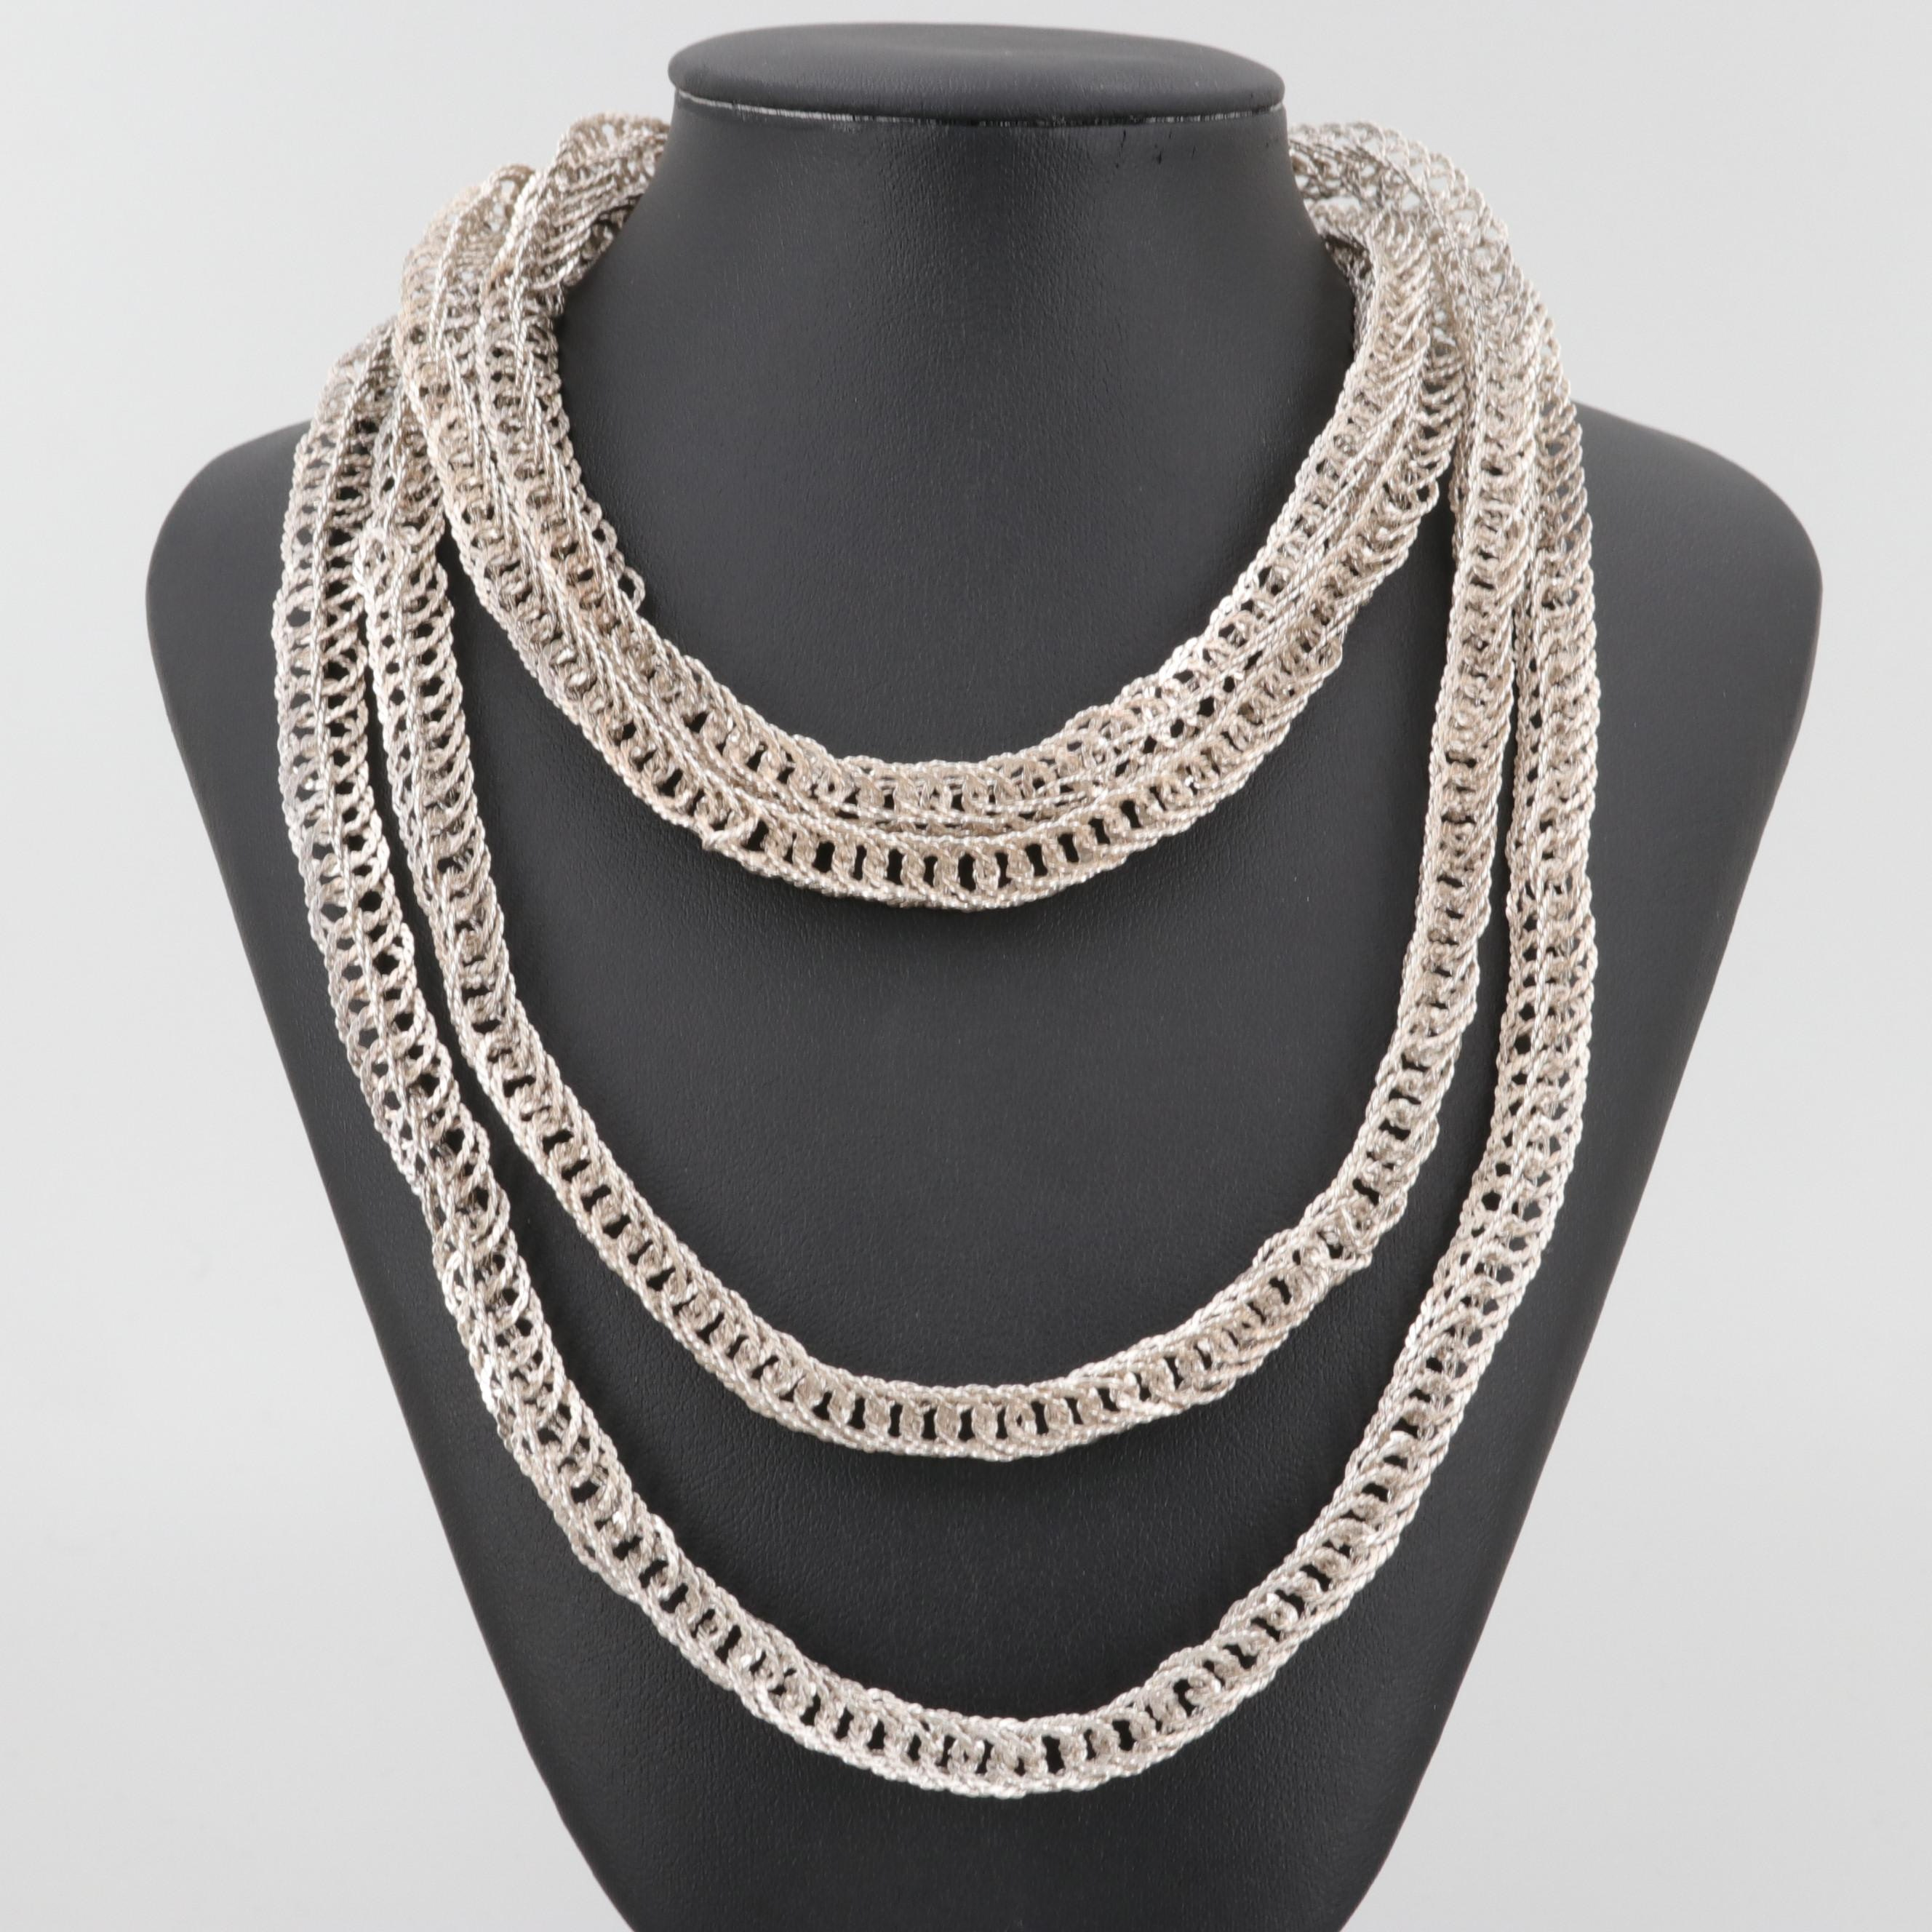 Silver Tone Endless Chain Necklace